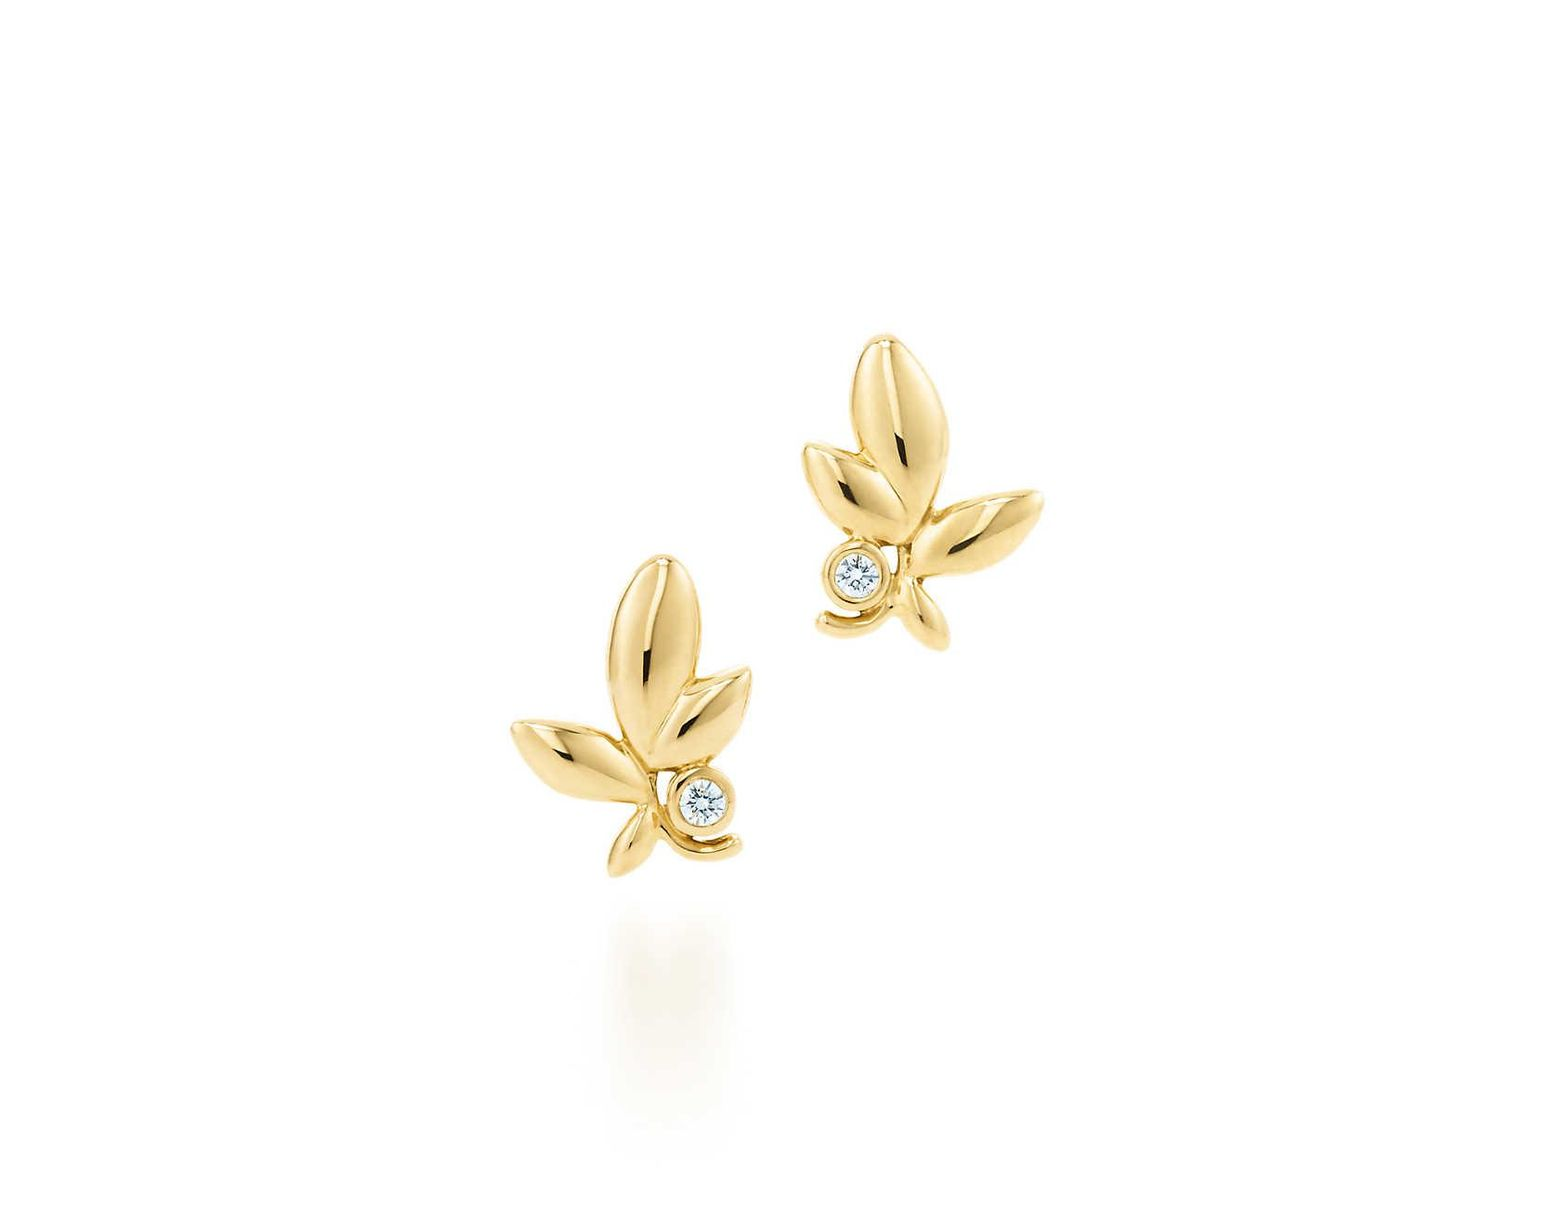 fd4820ceb Tiffany & Co. Paloma Picasso® Olive Leaf Earrings In 18k Gold With Diamonds  in Green - Lyst